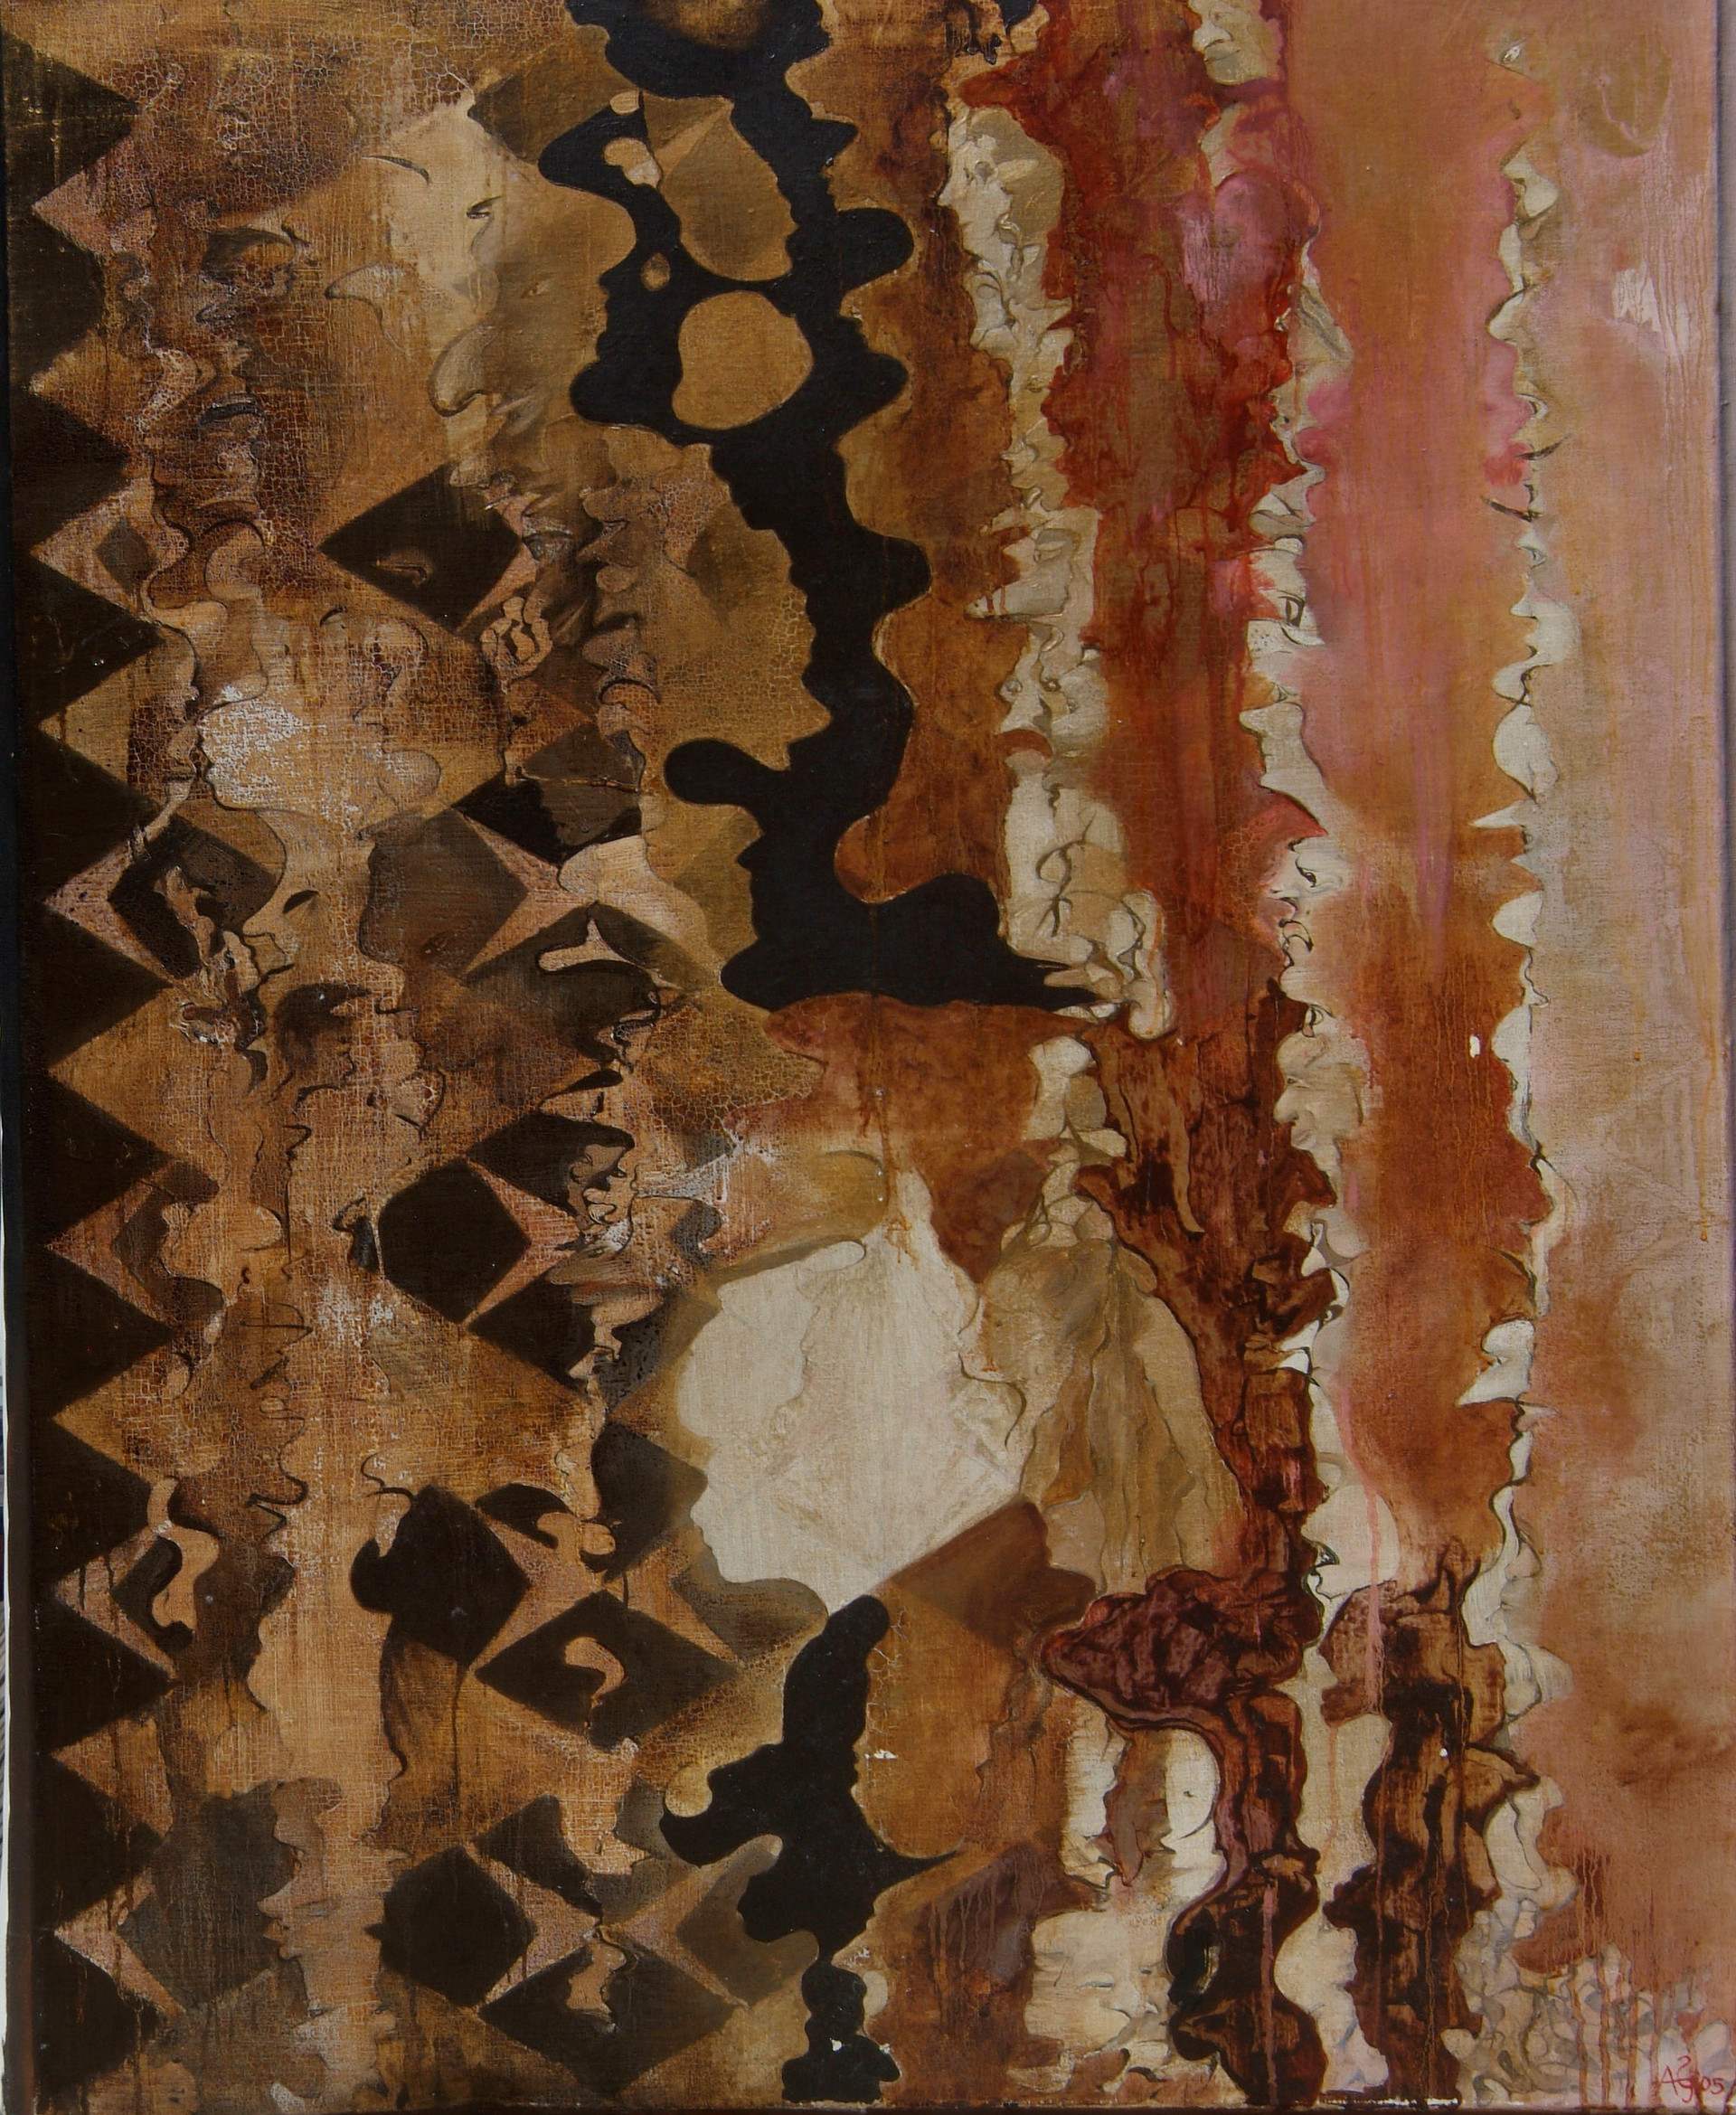 'Bach Vision', from Visual Kinesis oil on canvas 900x1200mm, 2005